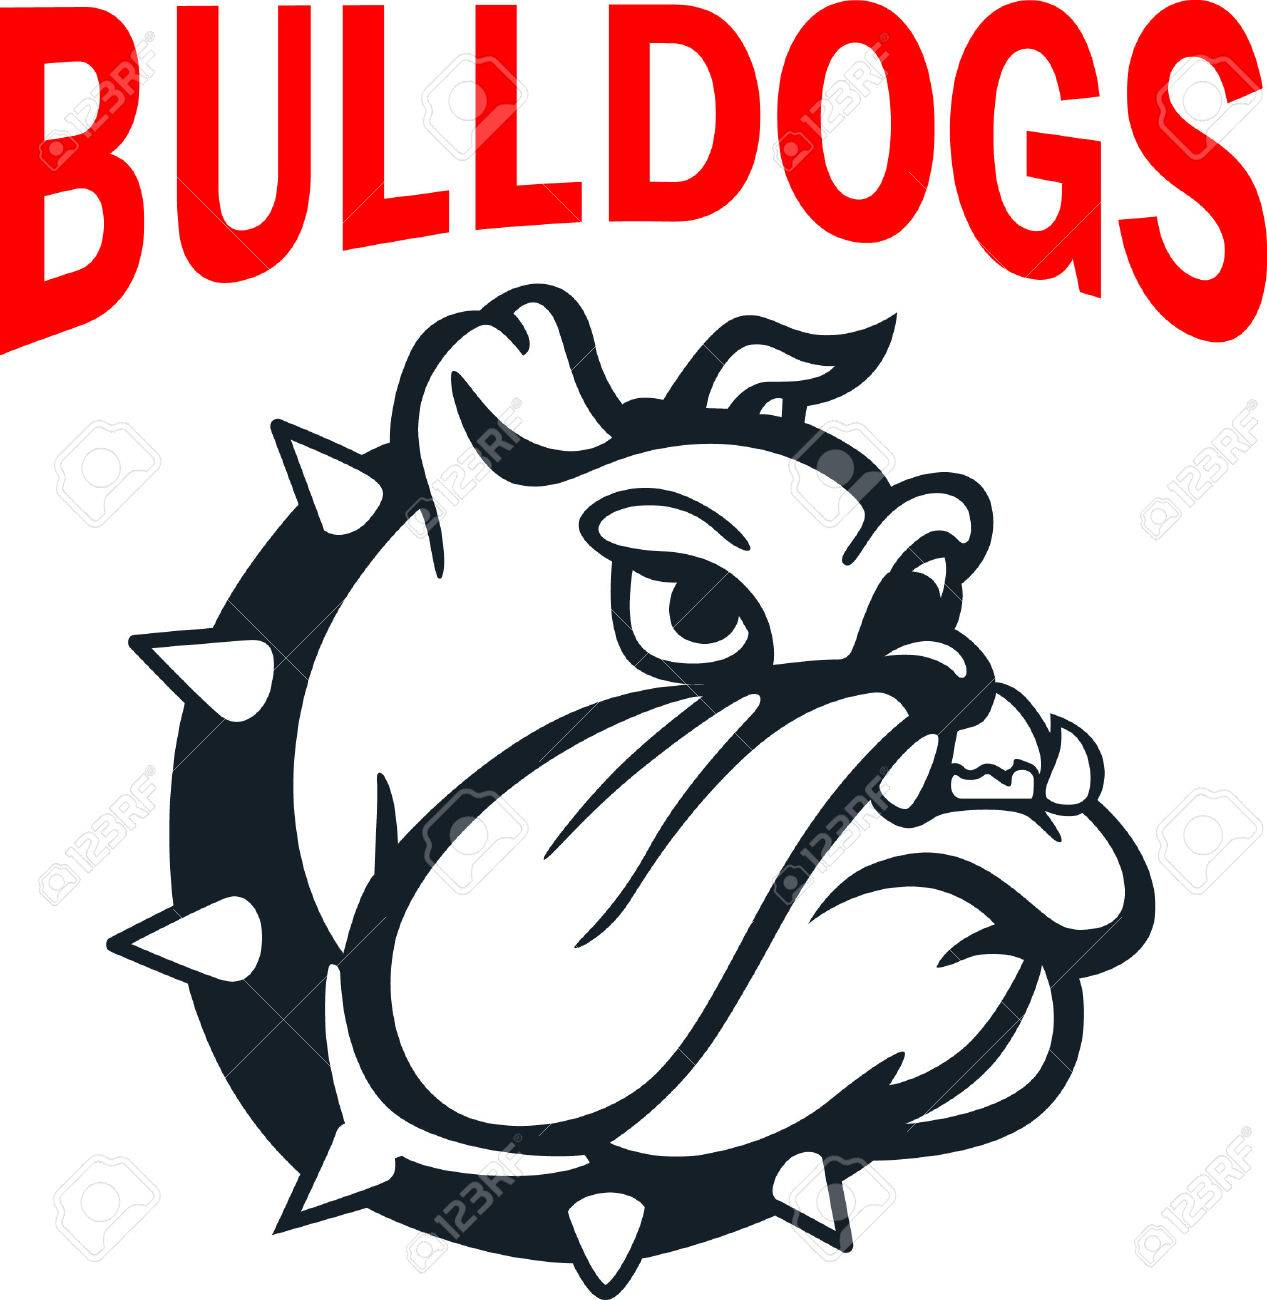 Show your team spirit with this bulldog logo. Everyone will love it! - 45056959